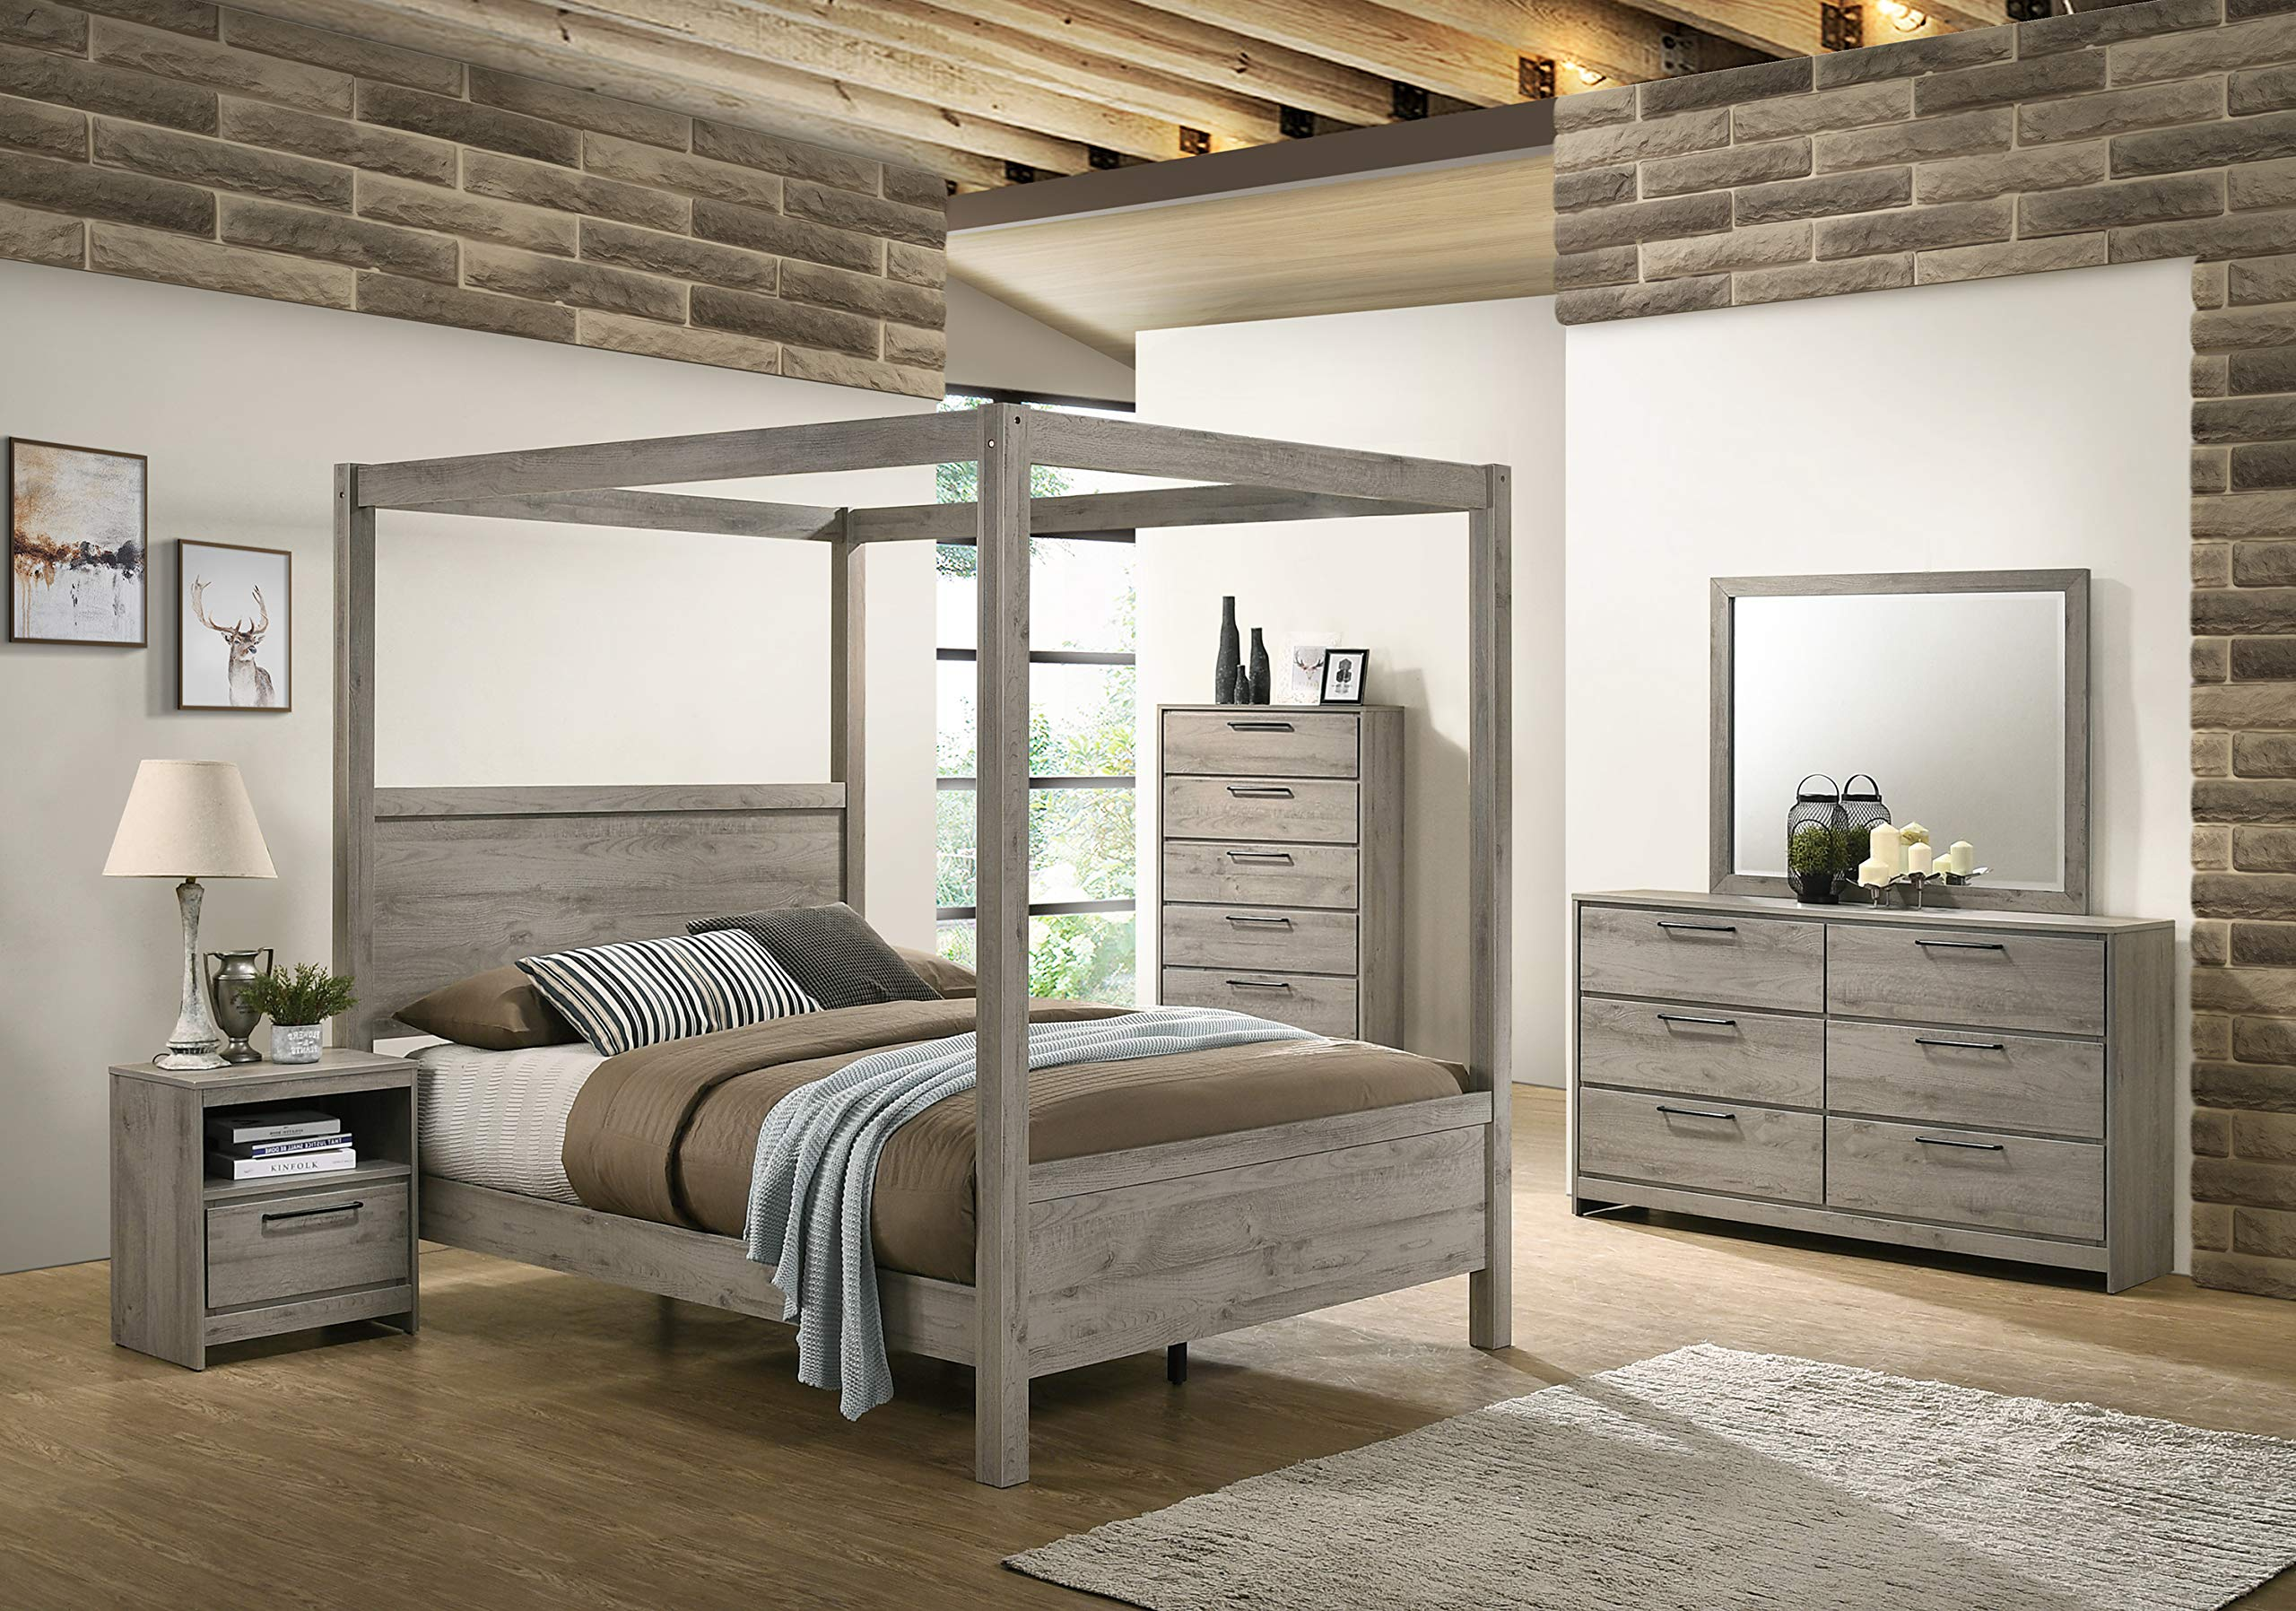 Kings Brand Furniture Harley 6 Piece King Size Bedroom Set Light Grey Bed Dresser Mirror Chest 2 Night Stands Buy Online In Gambia At Gambia Desertcart Com Productid 154910674